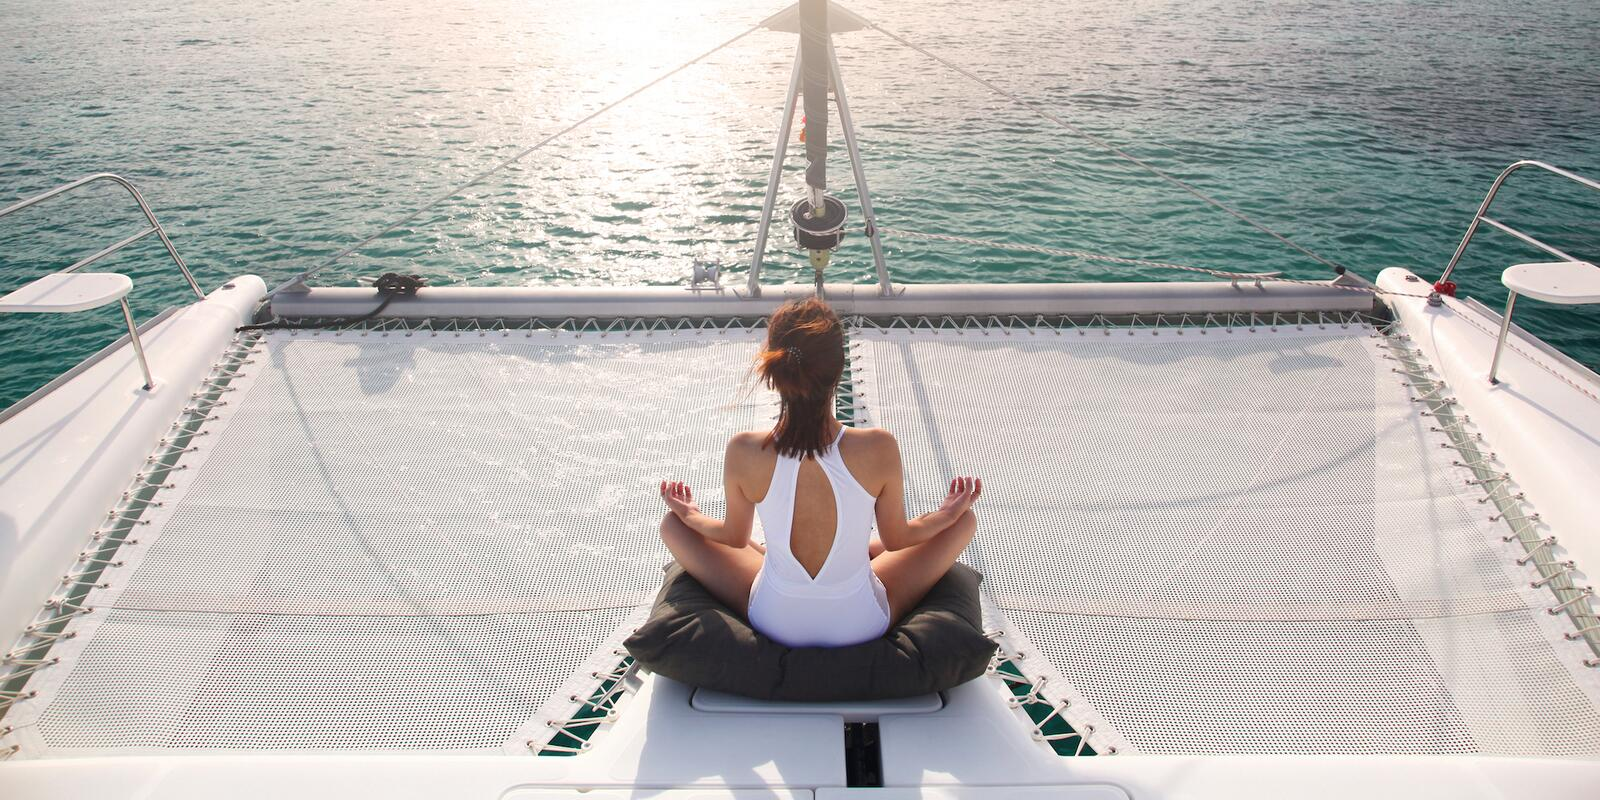 Yoga & Sailing in Formentera - All inclusive